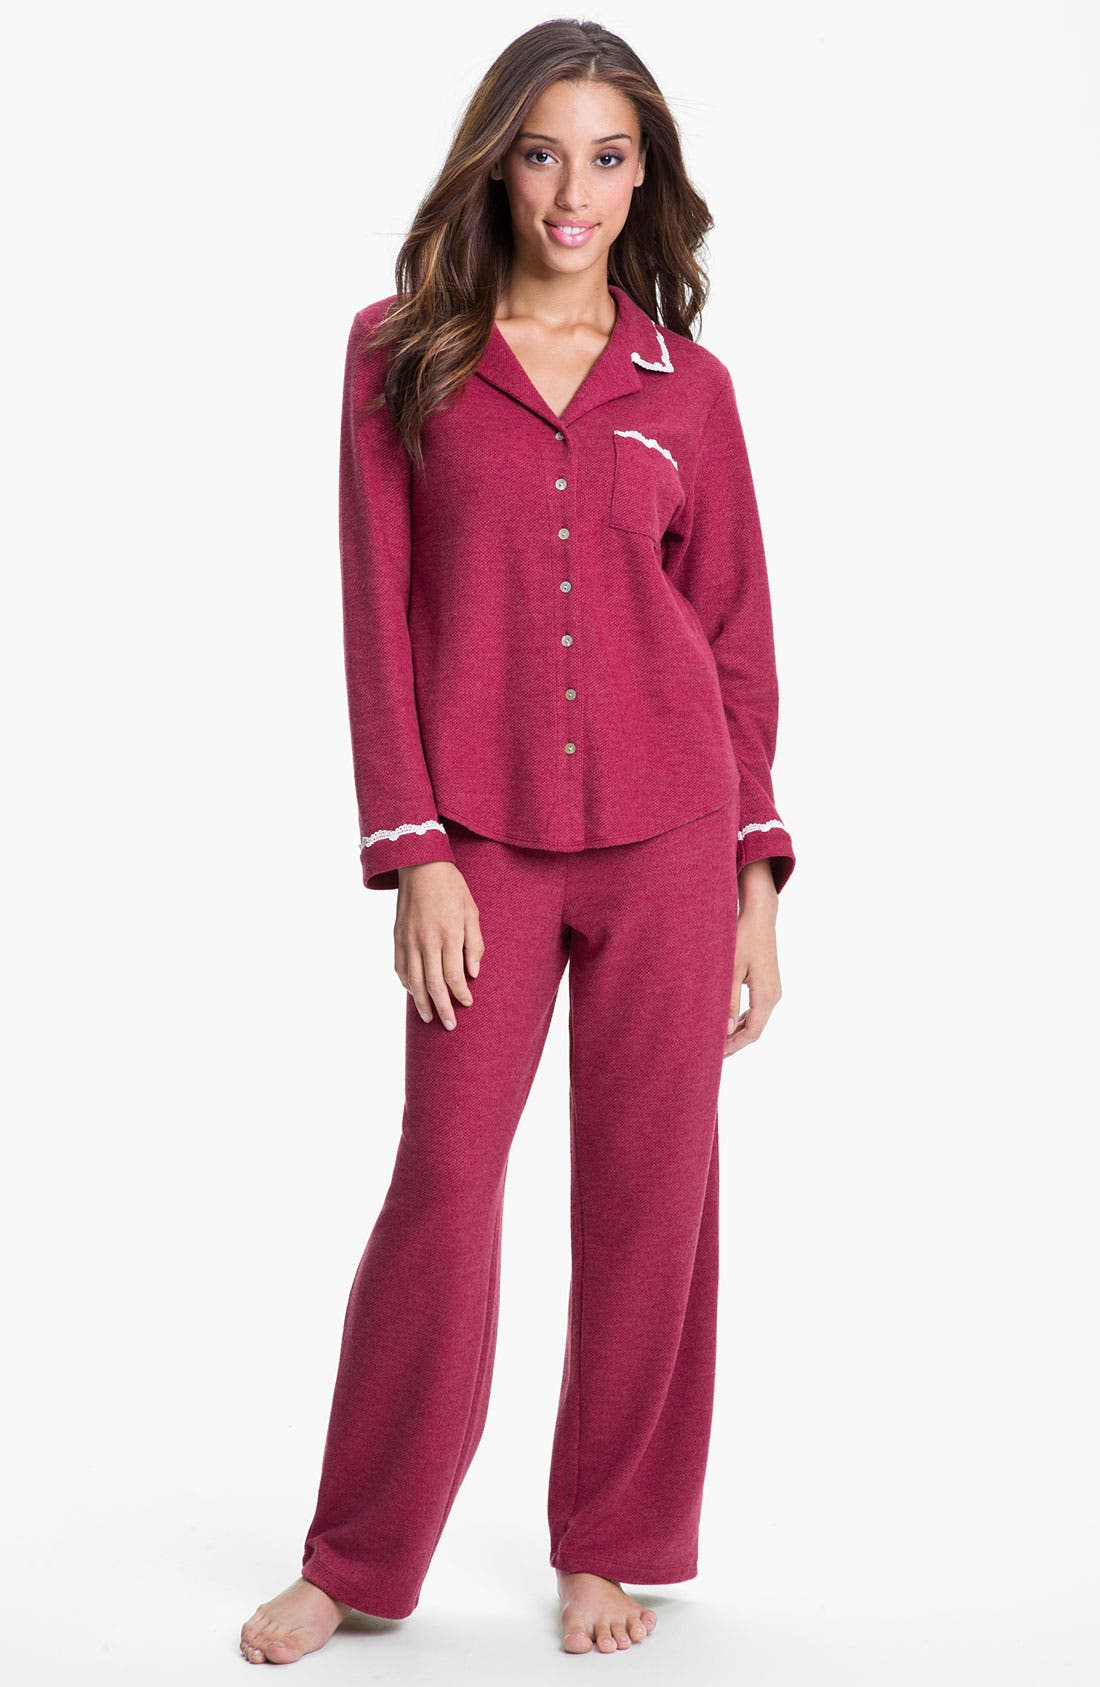 Alternate Image 1 Selected - Eileen West 'Winter Star' Thermal Pajamas